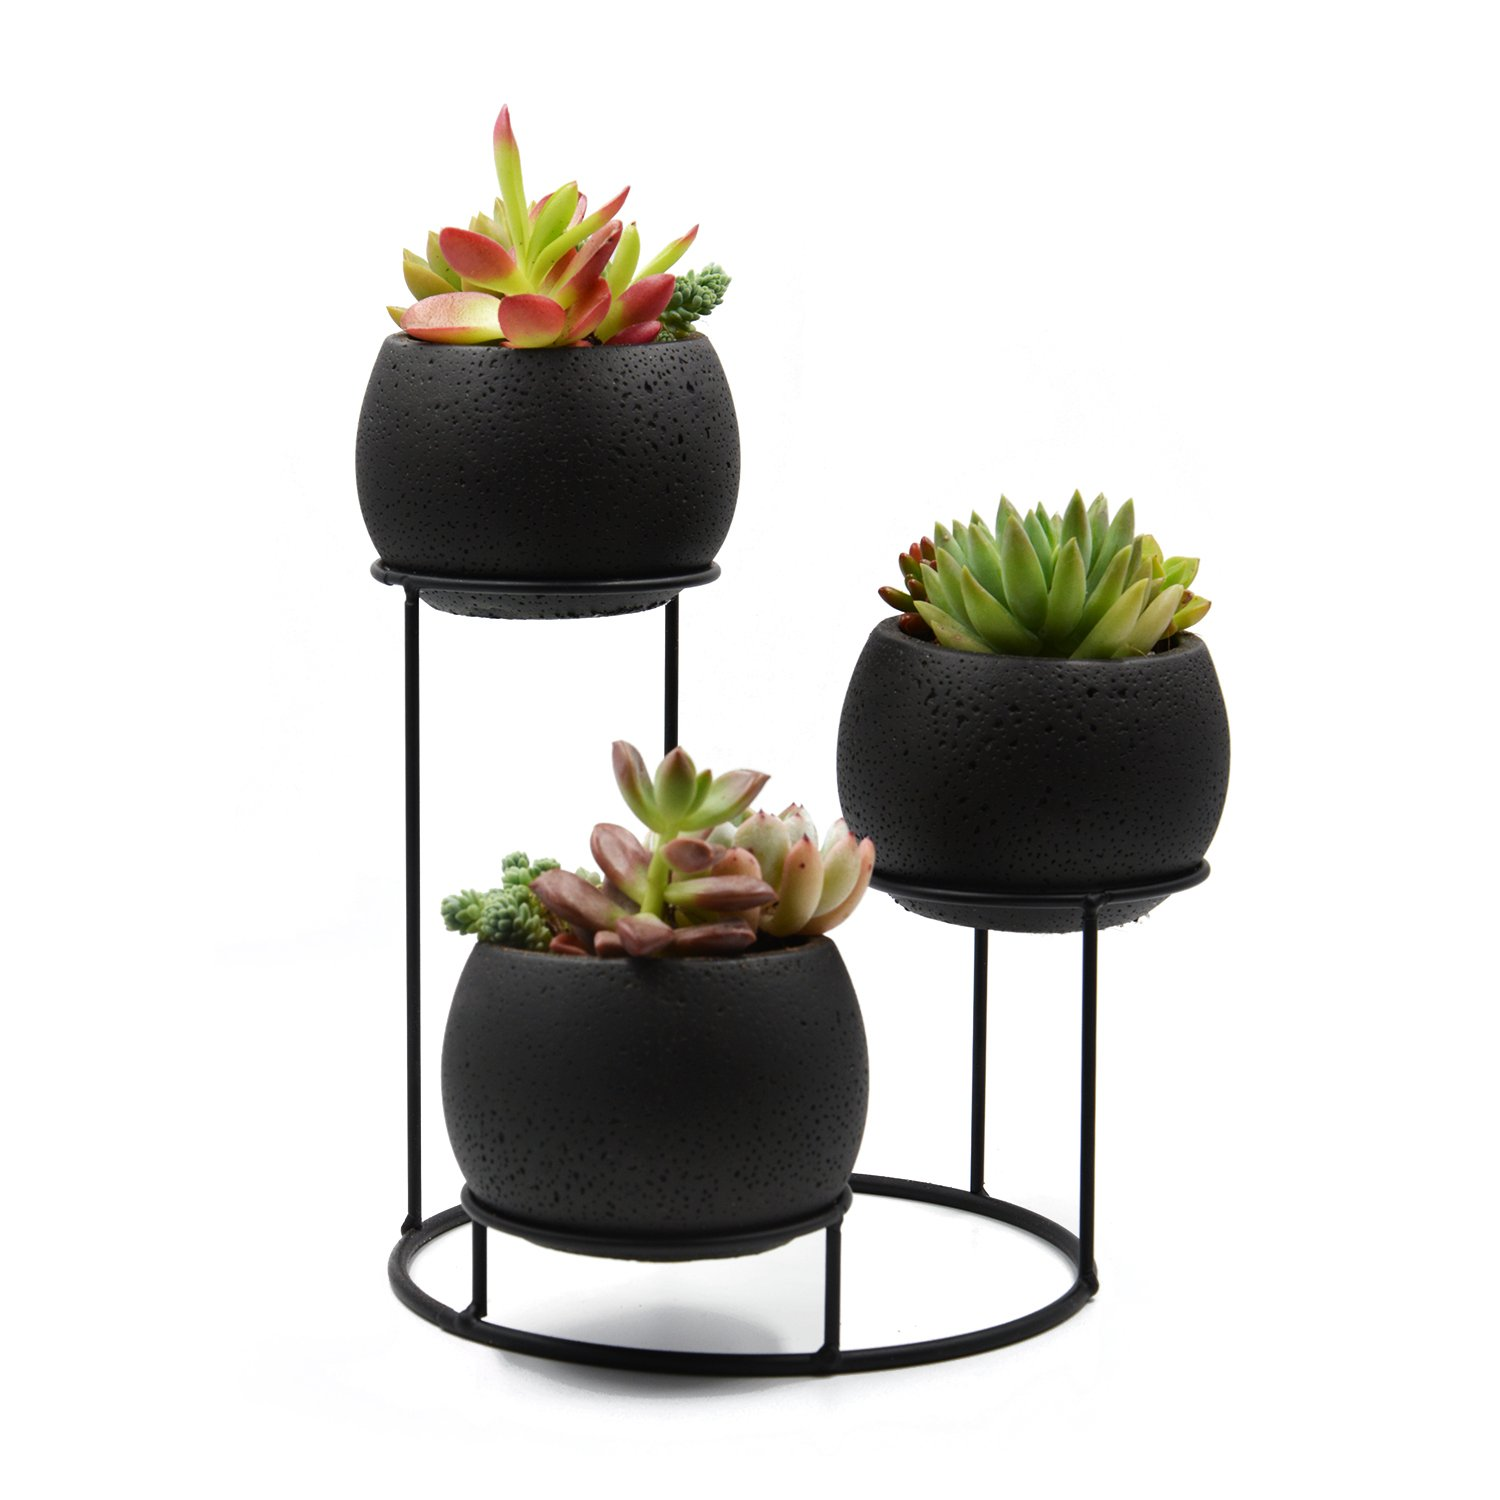 UDMG Small Succulent Cactus Cement Plant Pot, 3 Black Cement Planter with a Iron Stand Holder